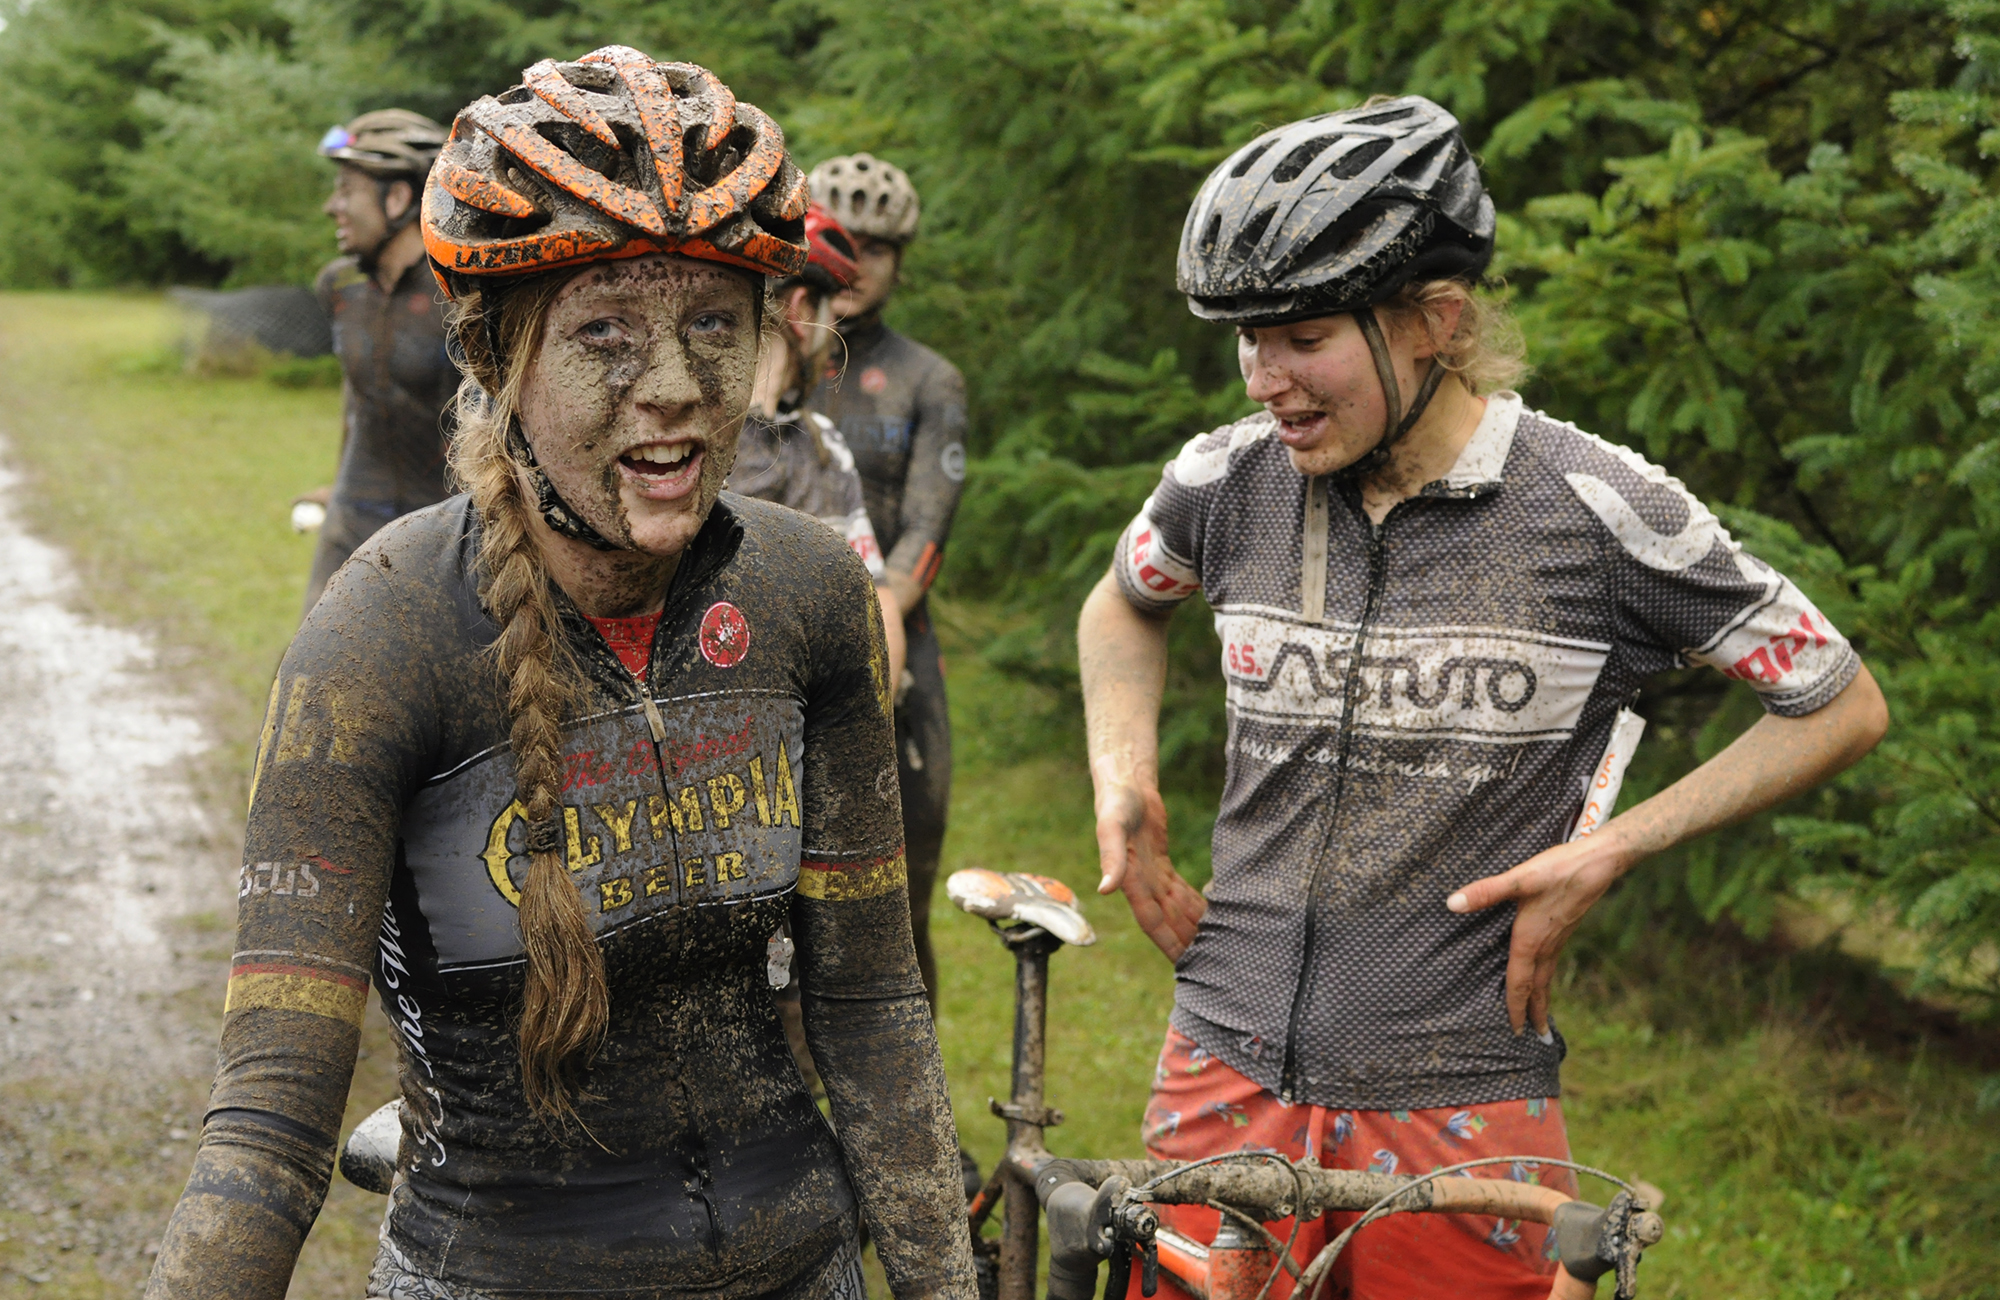 SellwoodCycle_CCBP_66